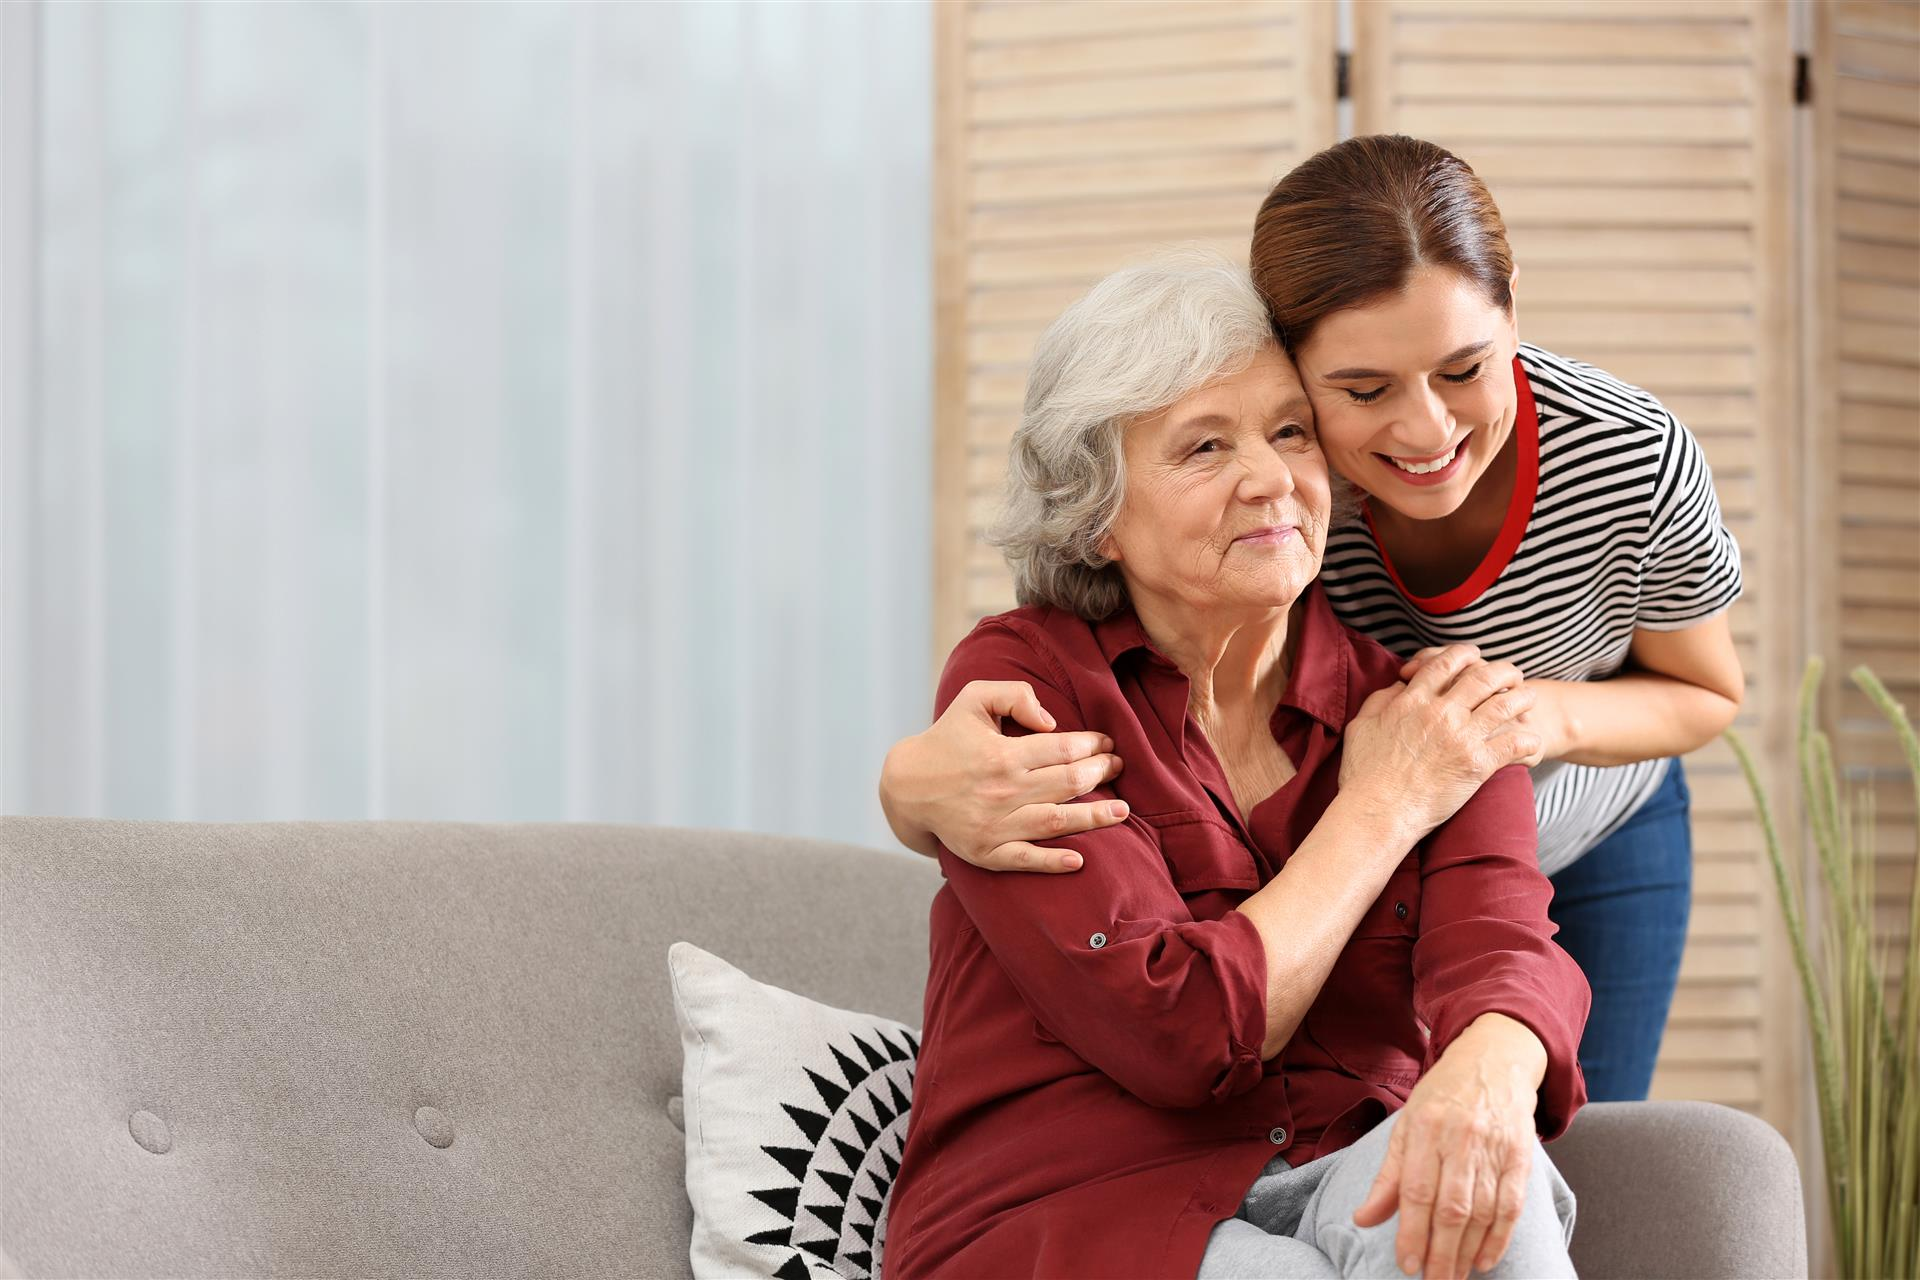 7 BENEFITS OF ASSISTED LIVING WITH BETHESDA SENIOR LIVING COMMUNITIES